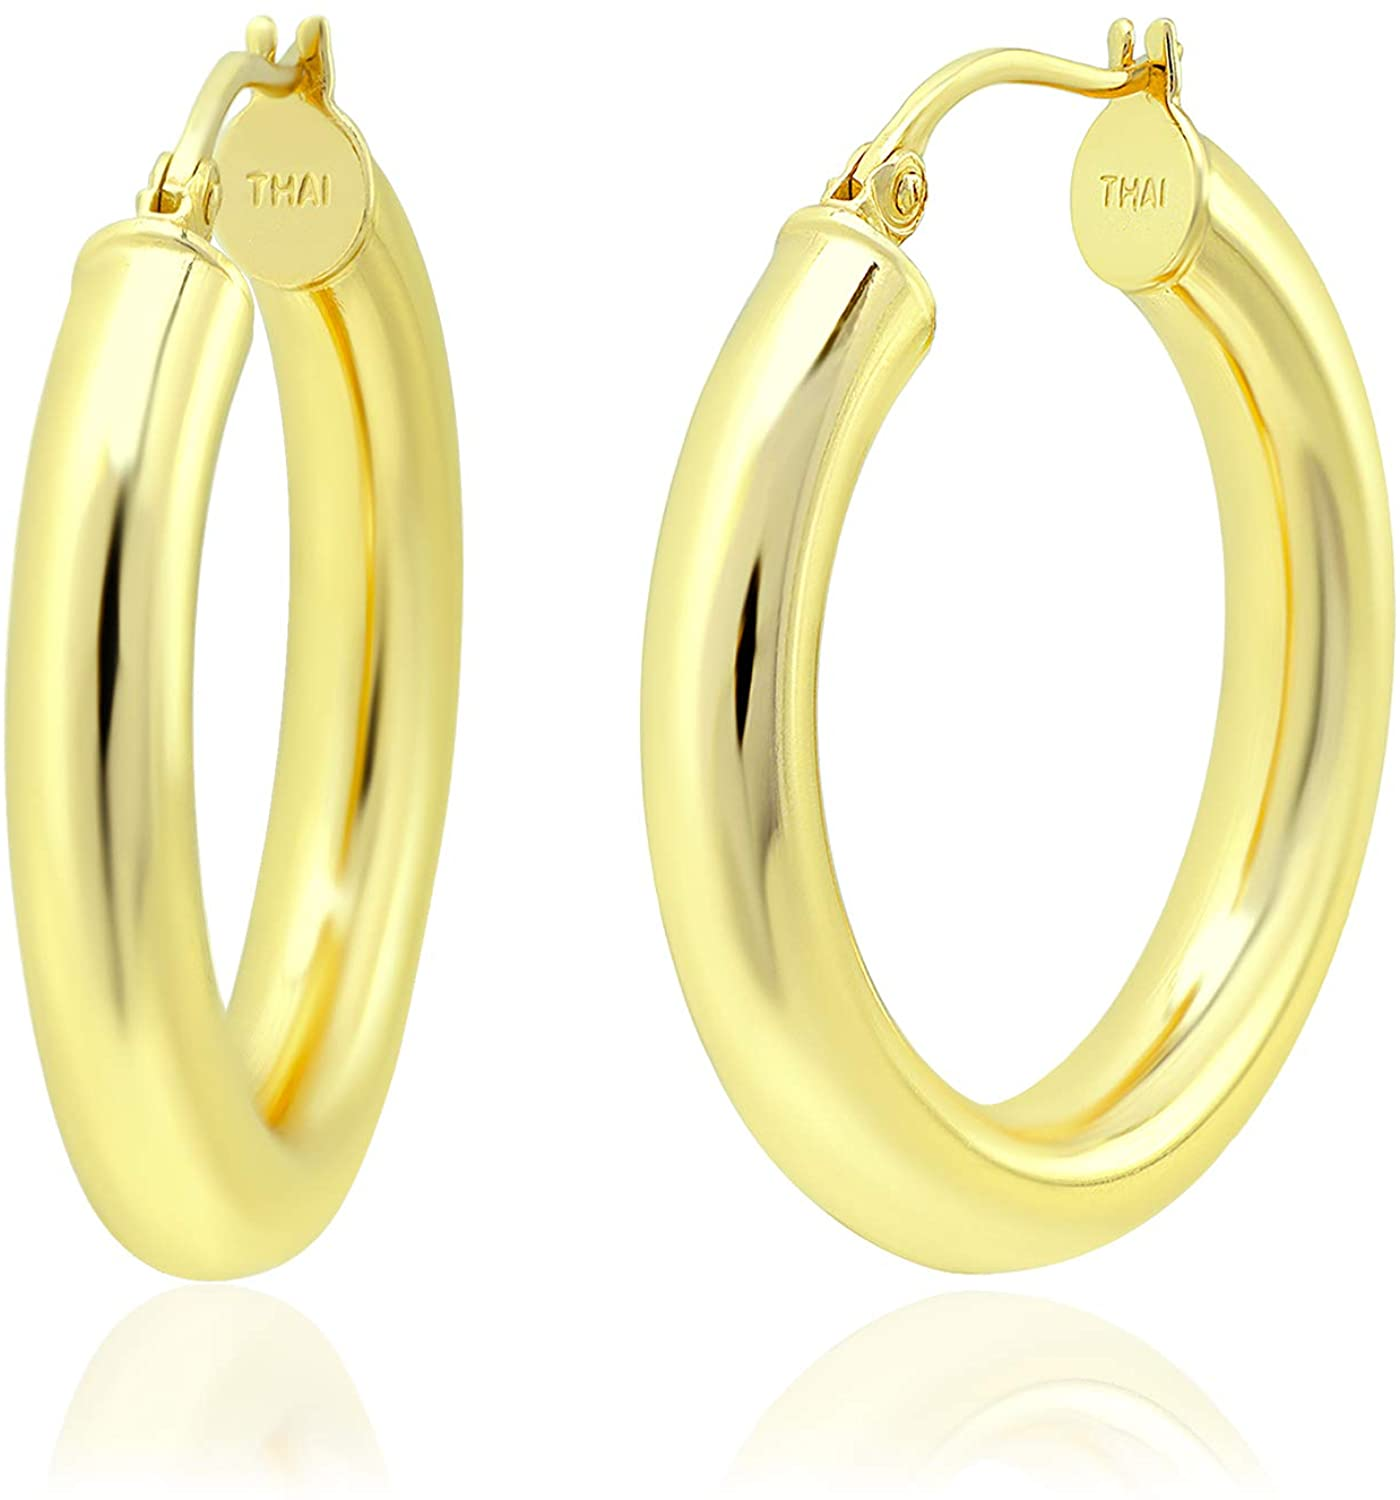 Michael Zweig Gold Flash Plated Sterling Silver Hoops Earrings with Click-Top Round Tube Size 4.0 mm Thick